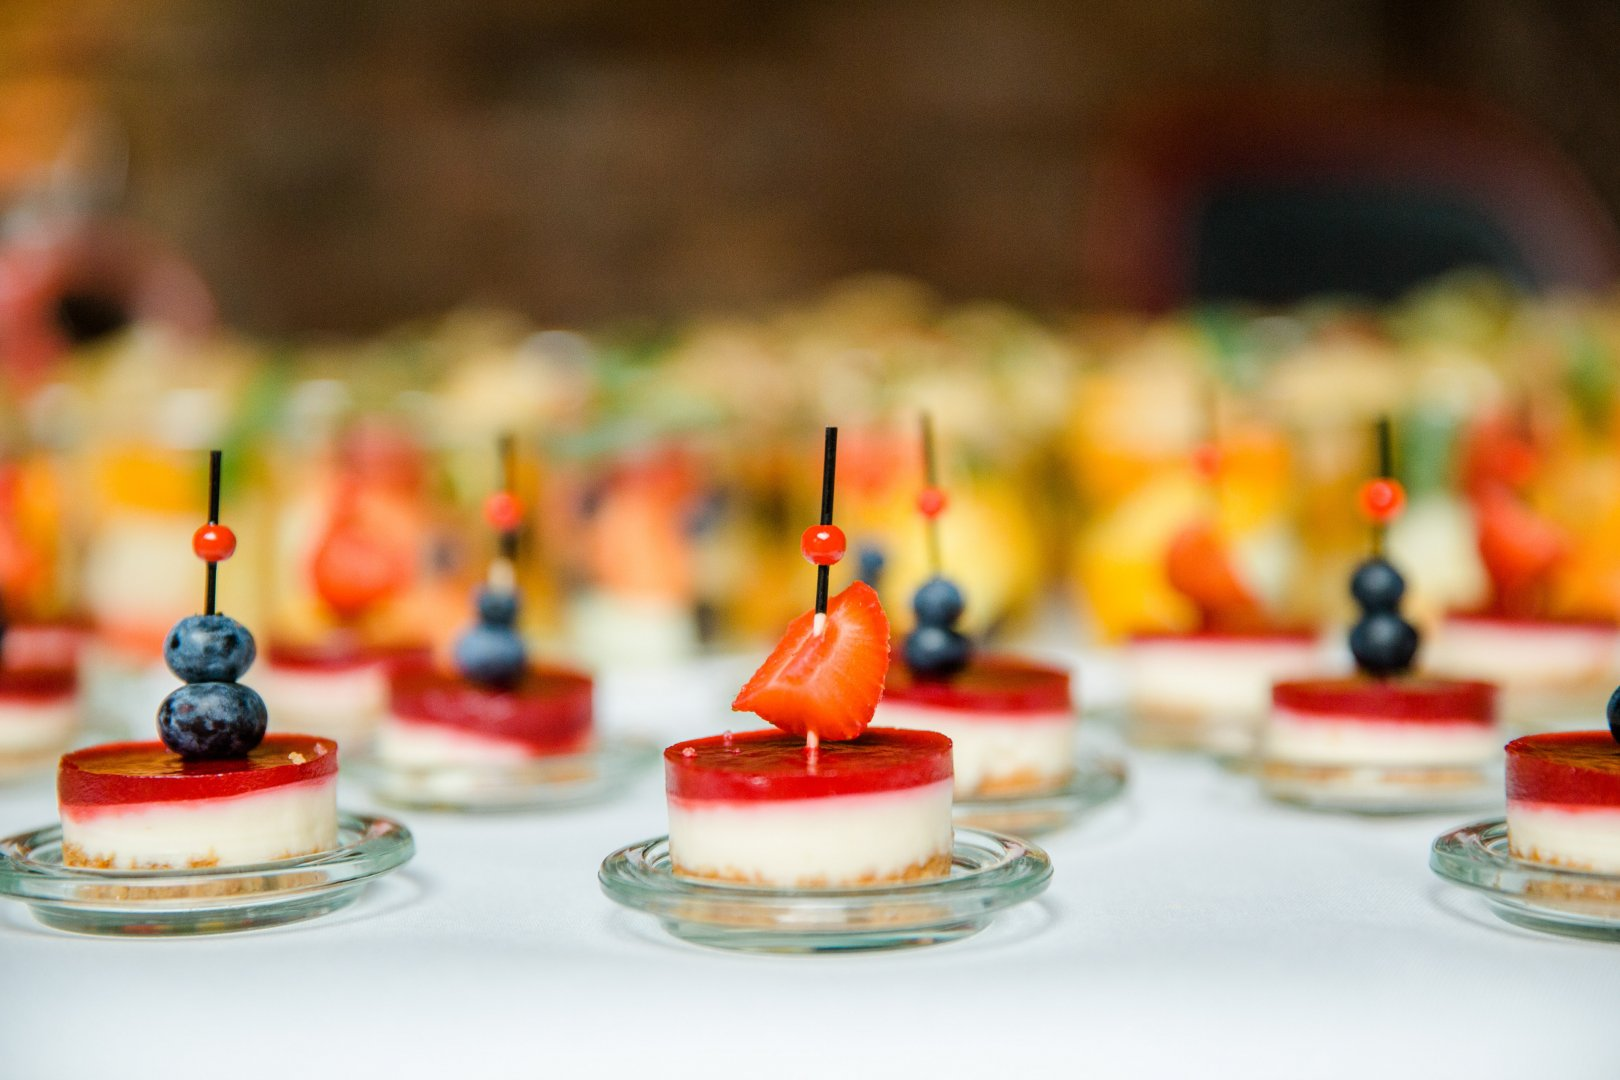 Food Orange Sweetness Dessert Finger food Cuisine Canapé Food coloring Hors d'oeuvre Baked goods Party Dish